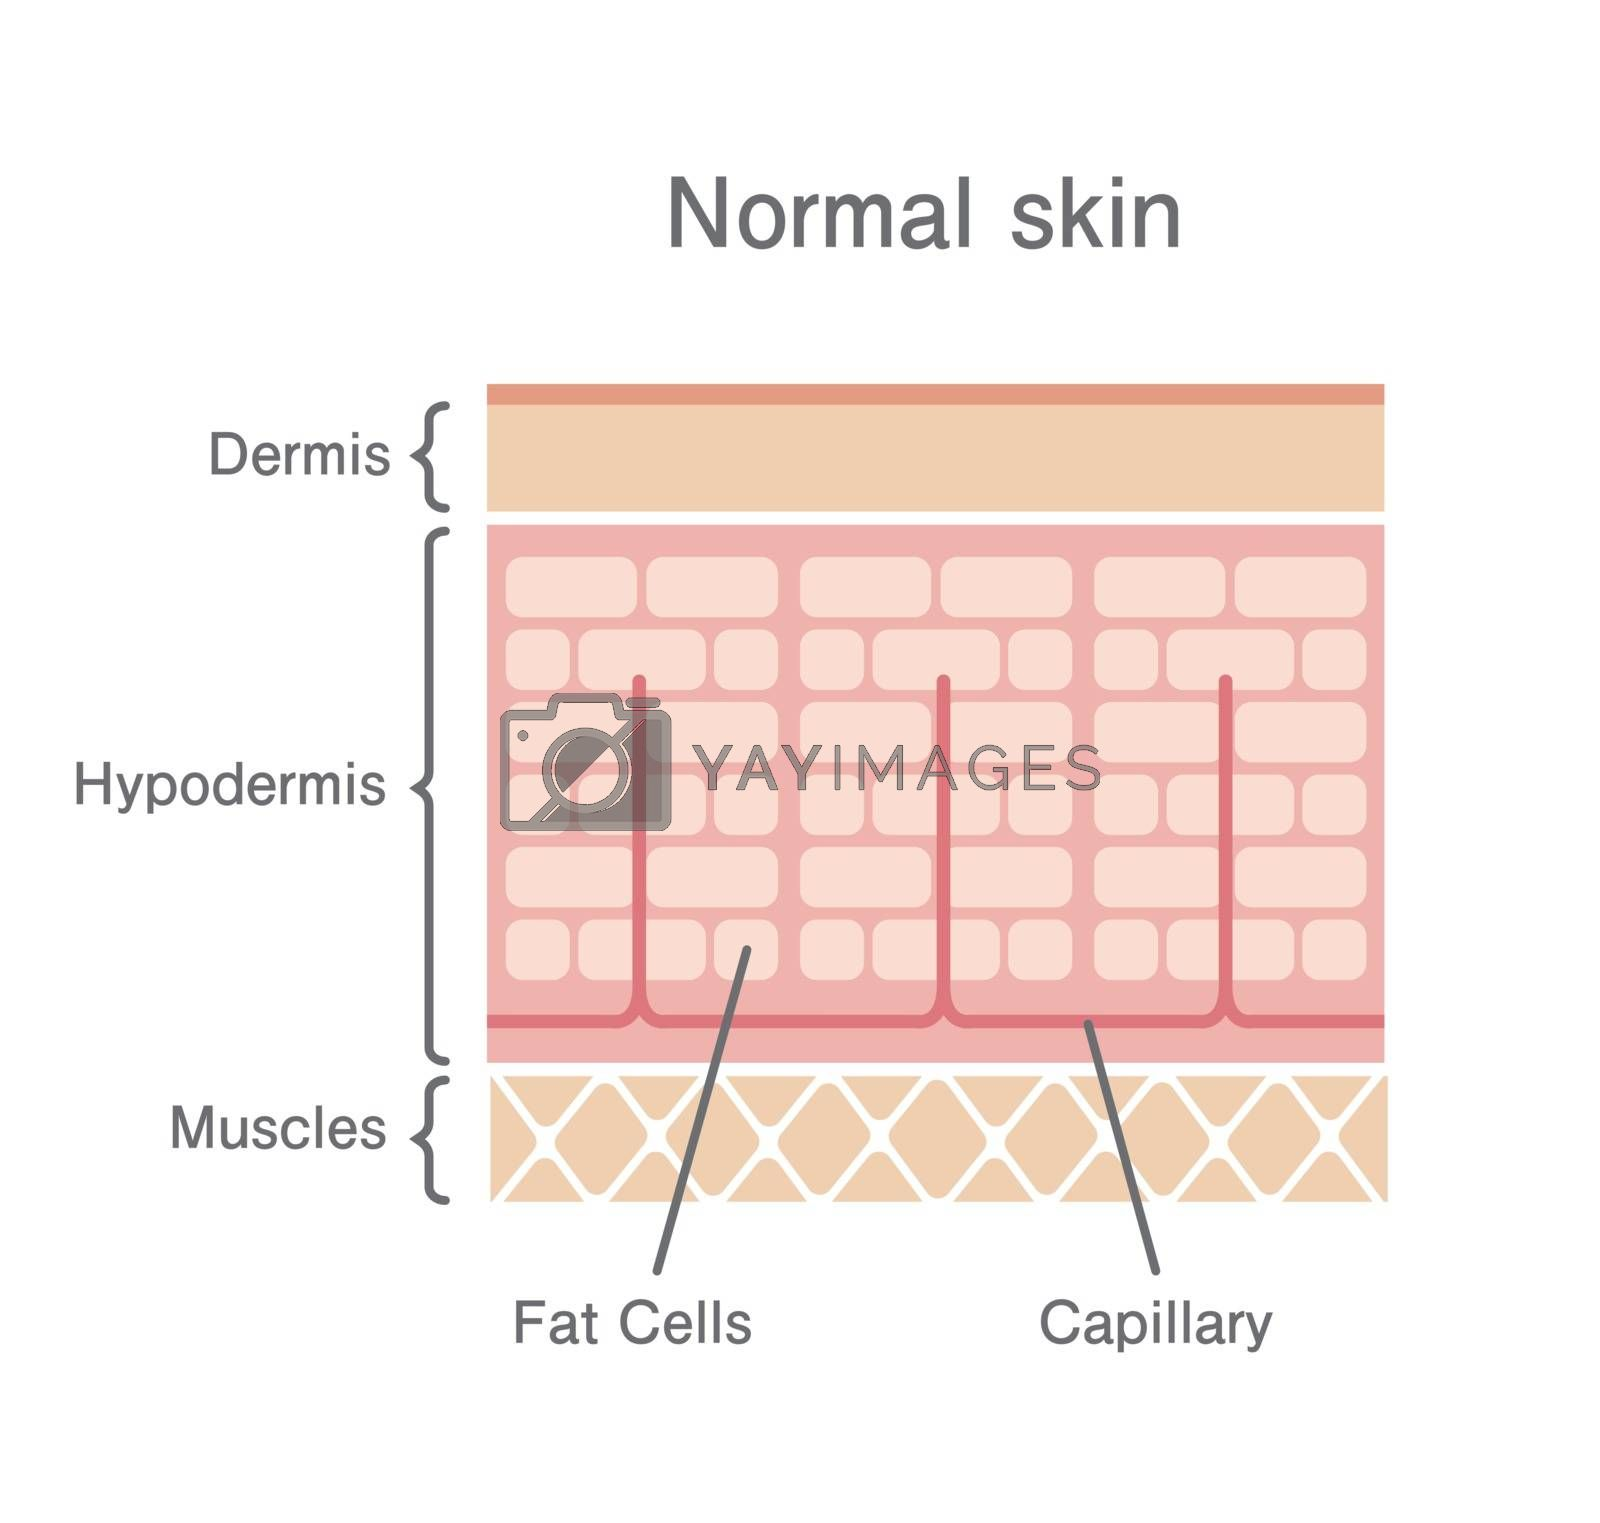 Royalty free image of Normal skin illustration by barks